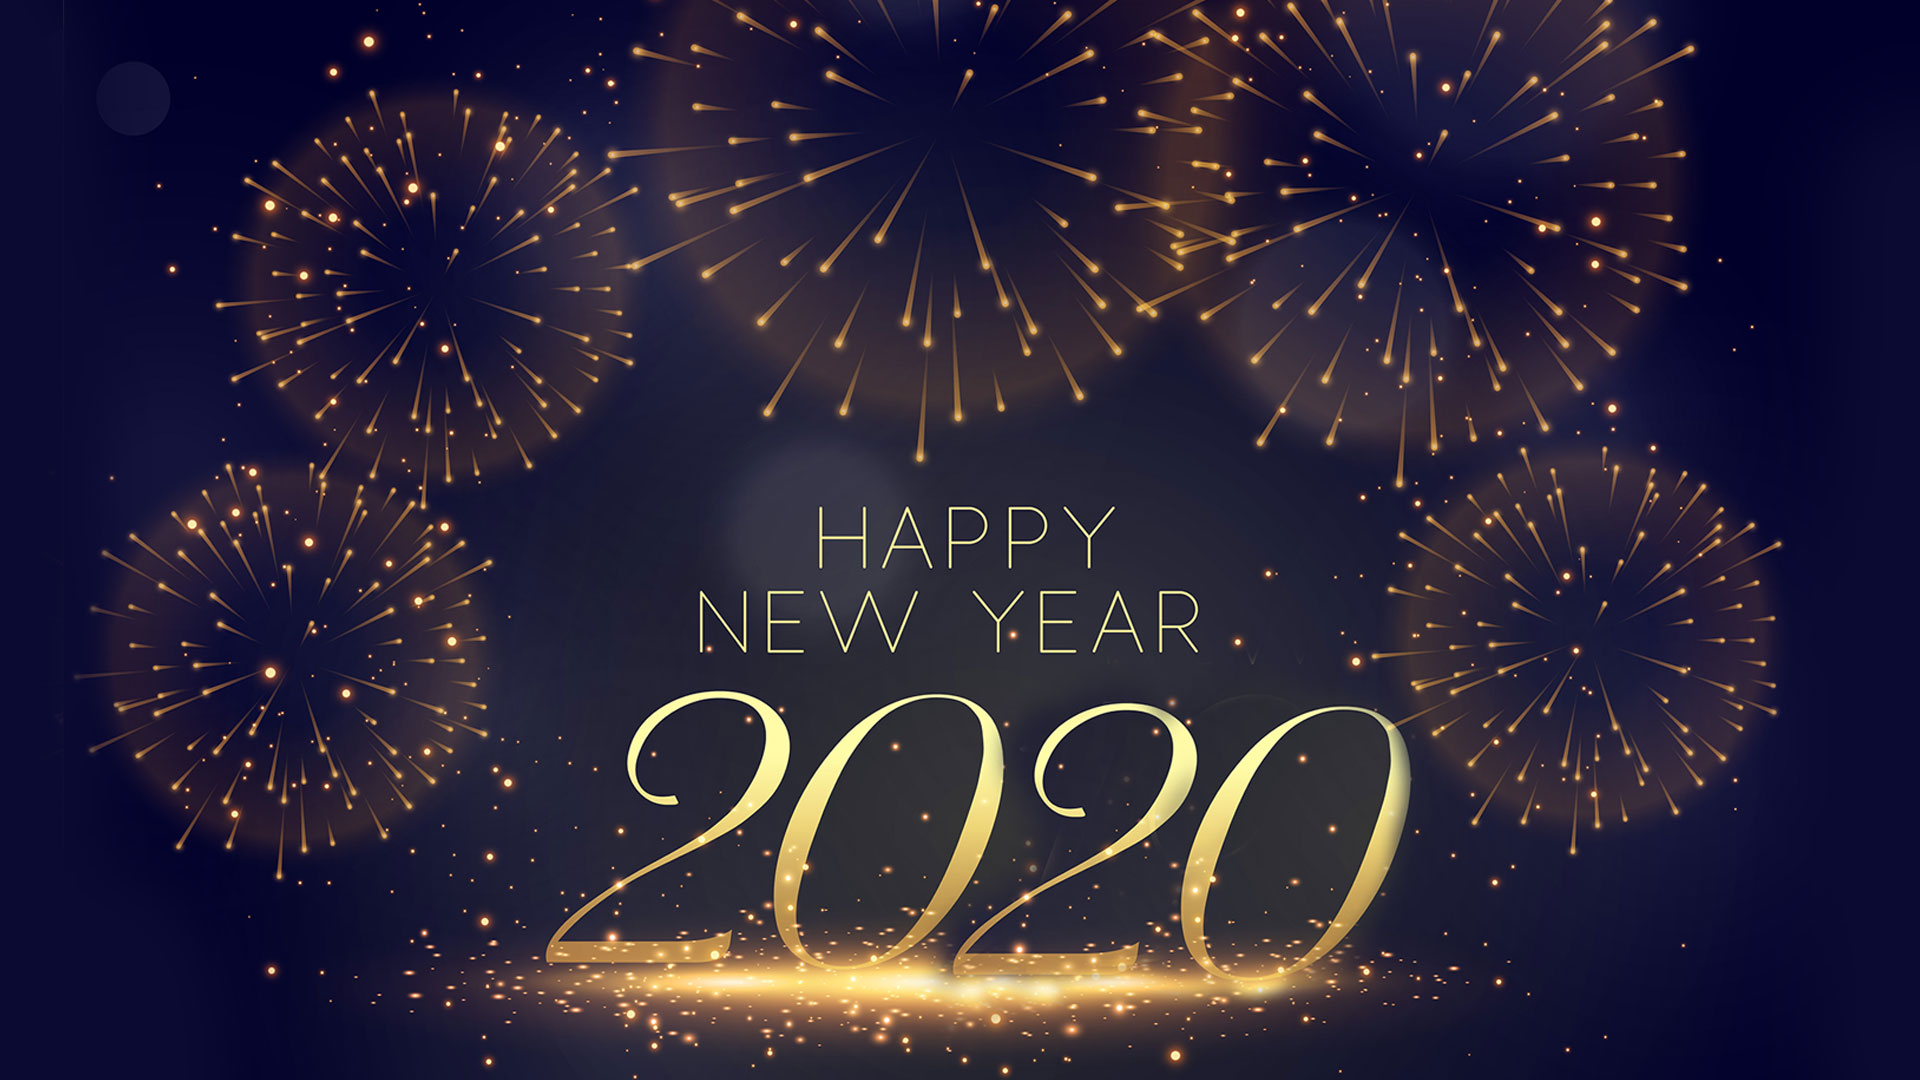 2020 Happy New Year Hd Wallpapers Images Free Download